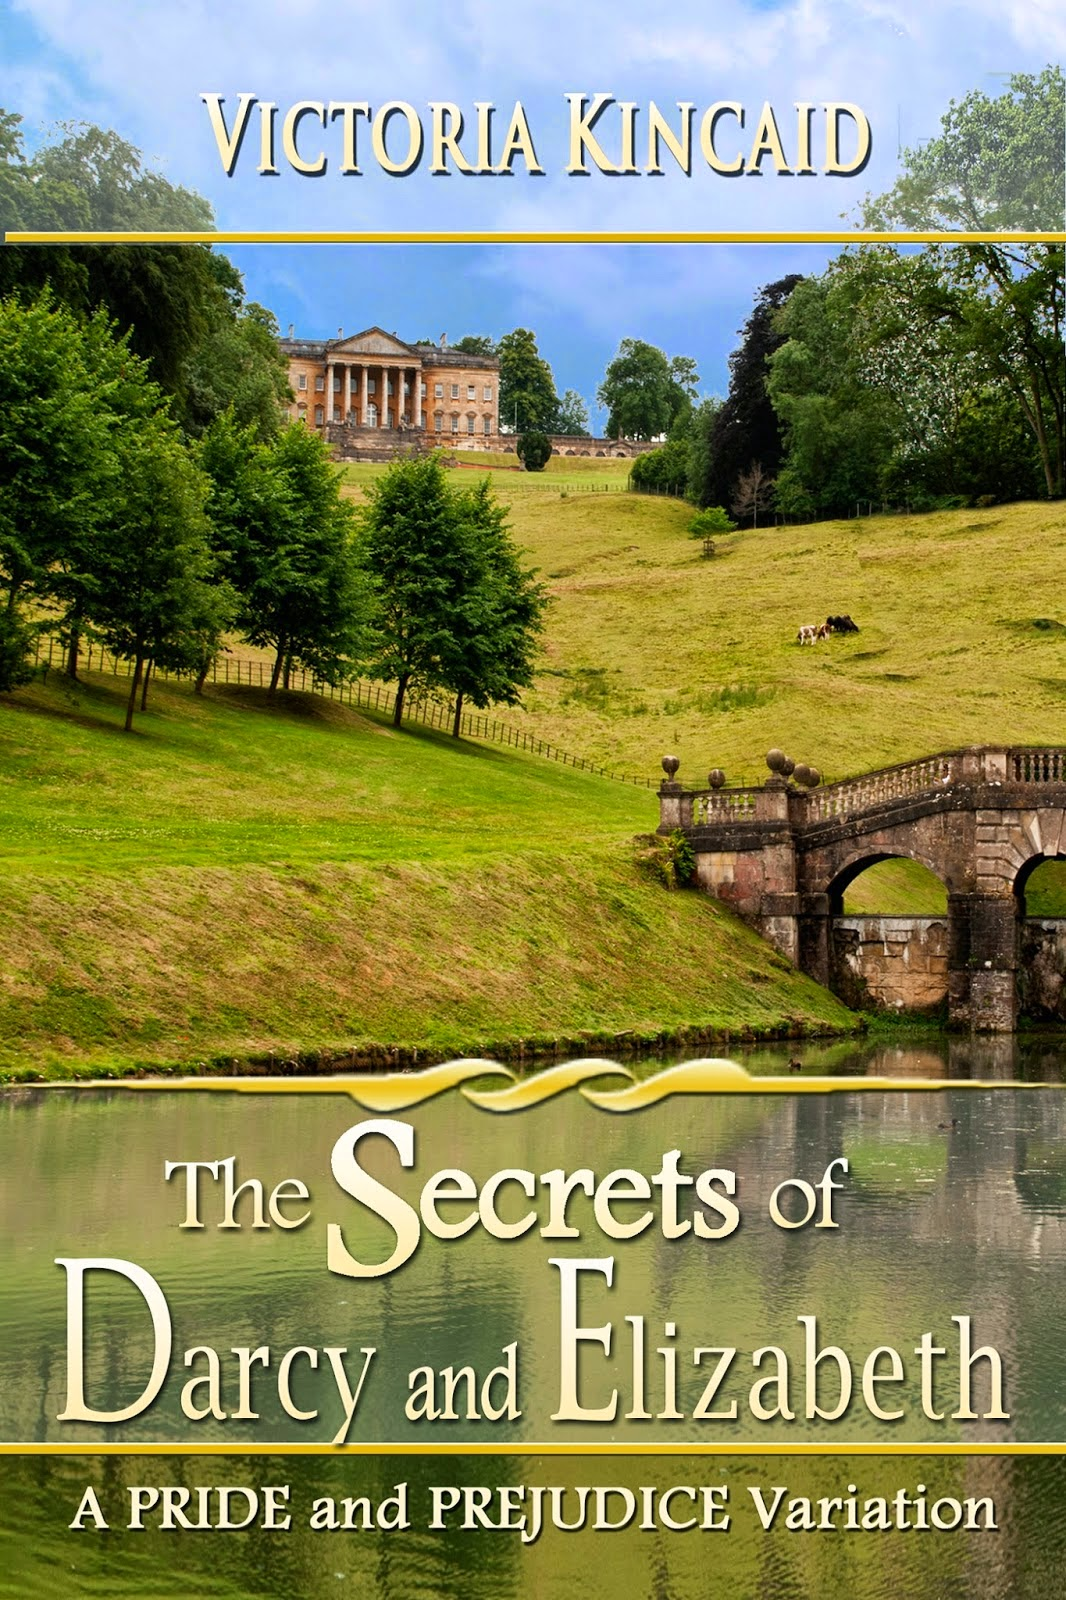 Book Cover The Secrets of Darcy and Elizabeth by Victoria Kincaid